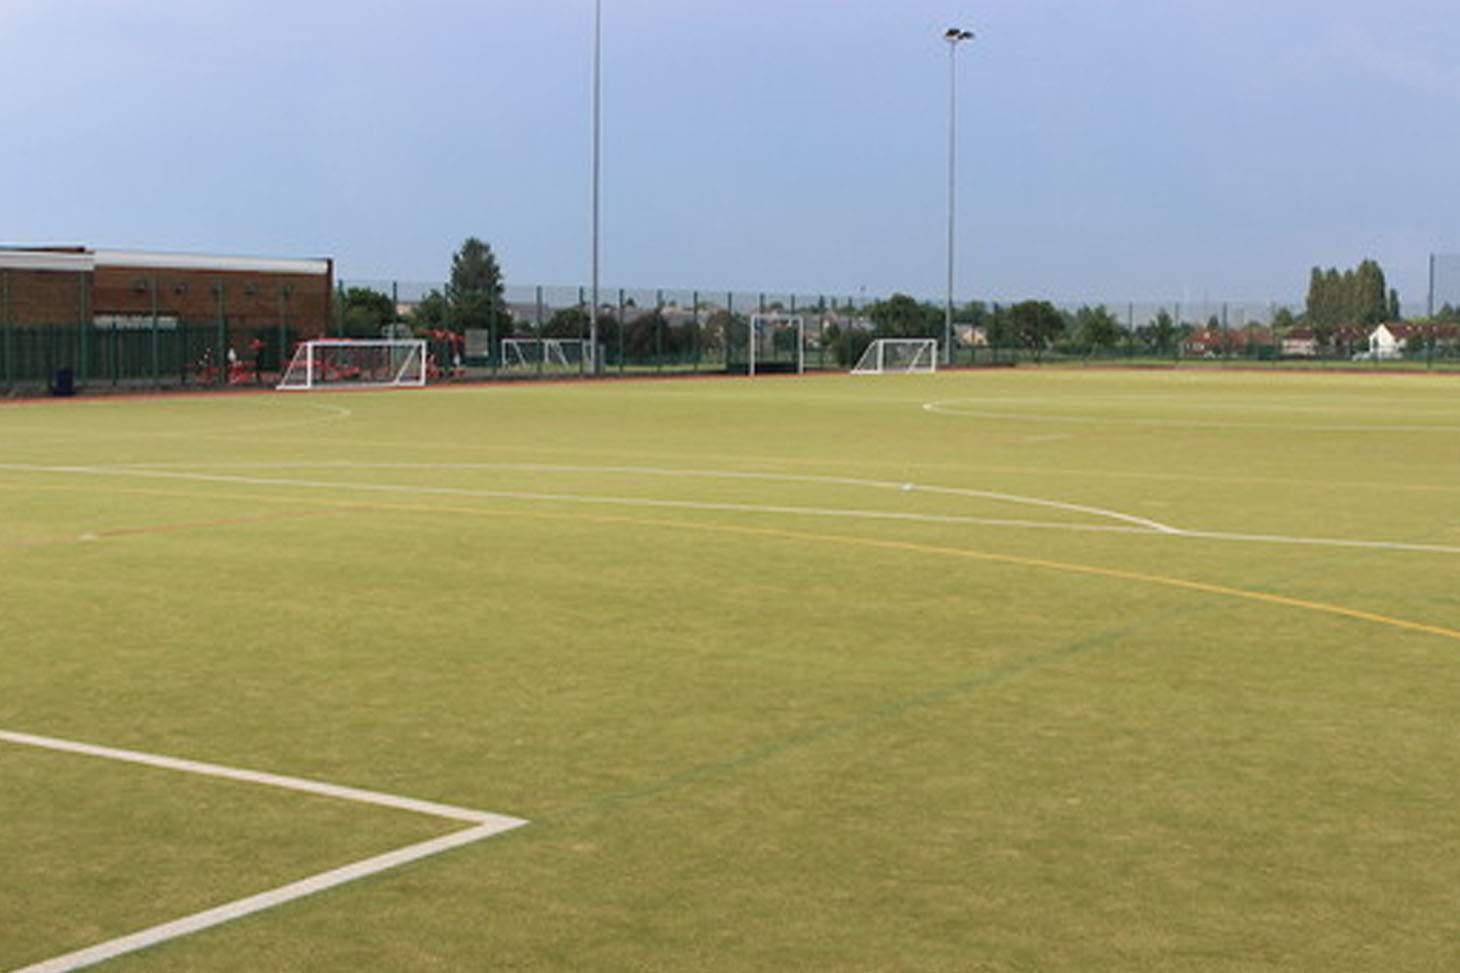 Thornaby Academy 11 a side | Astroturf football pitch